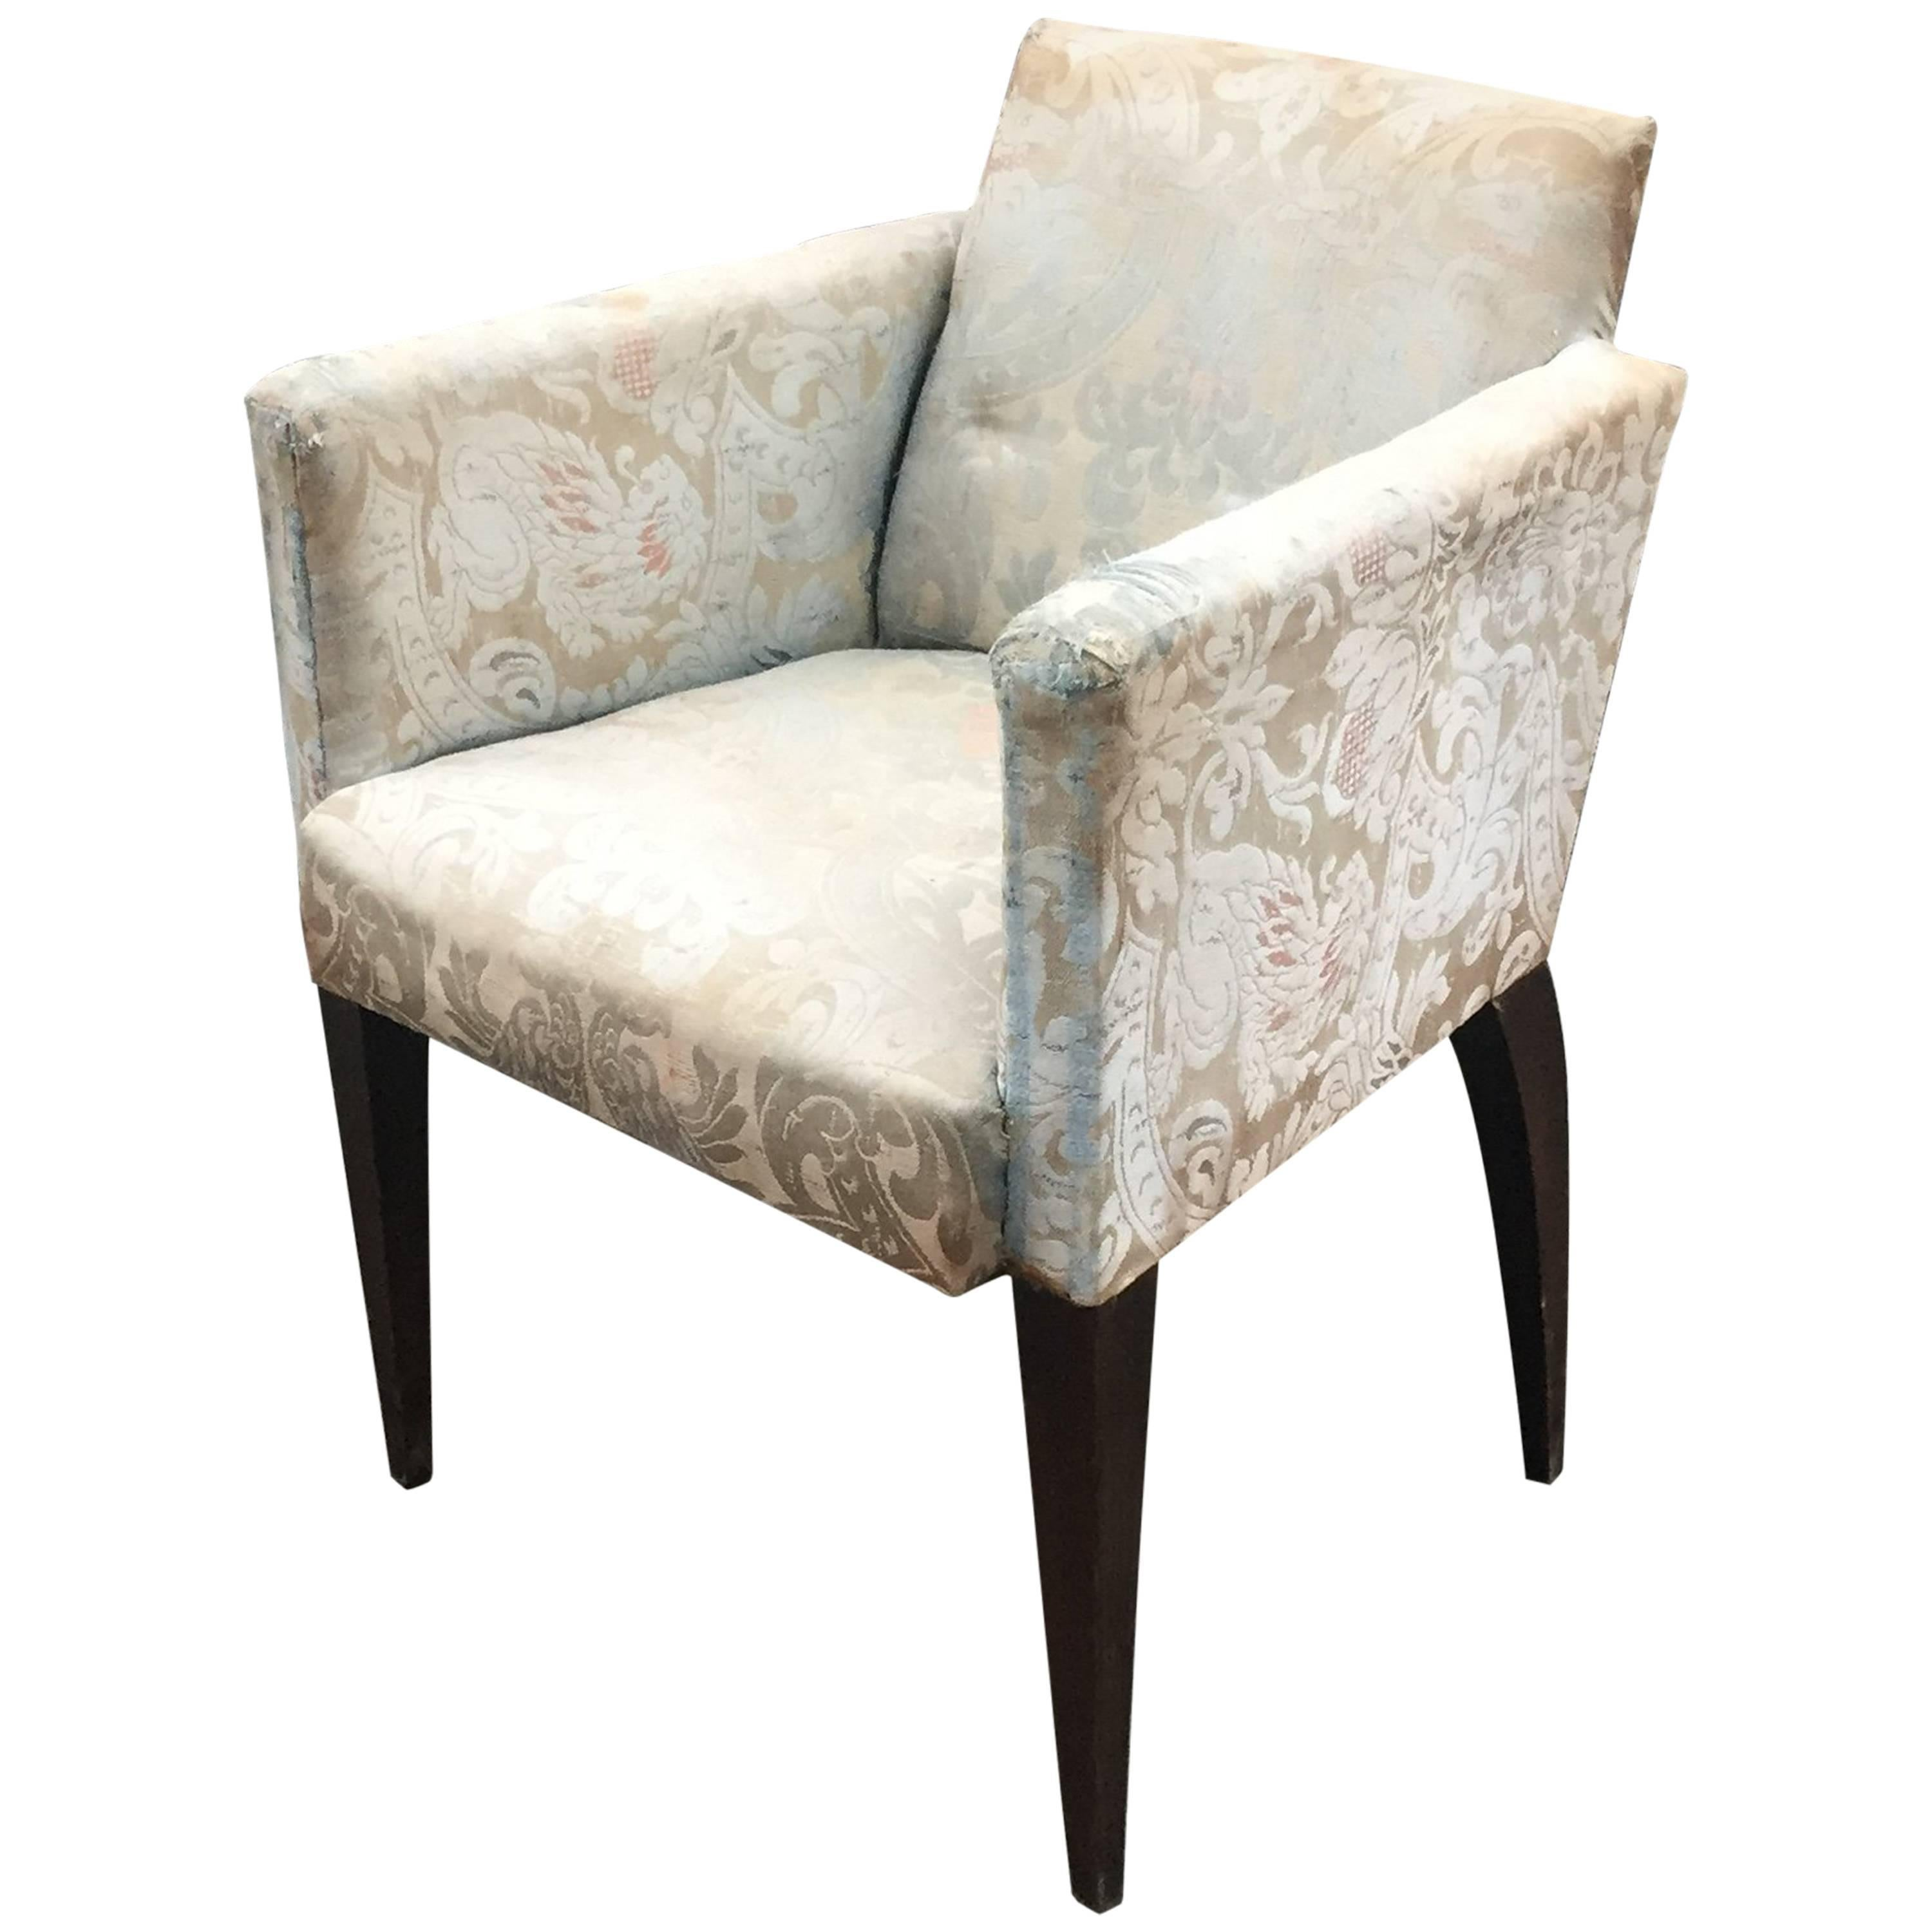 Art Deco Armchair in the Style of Alfred Porteneuve